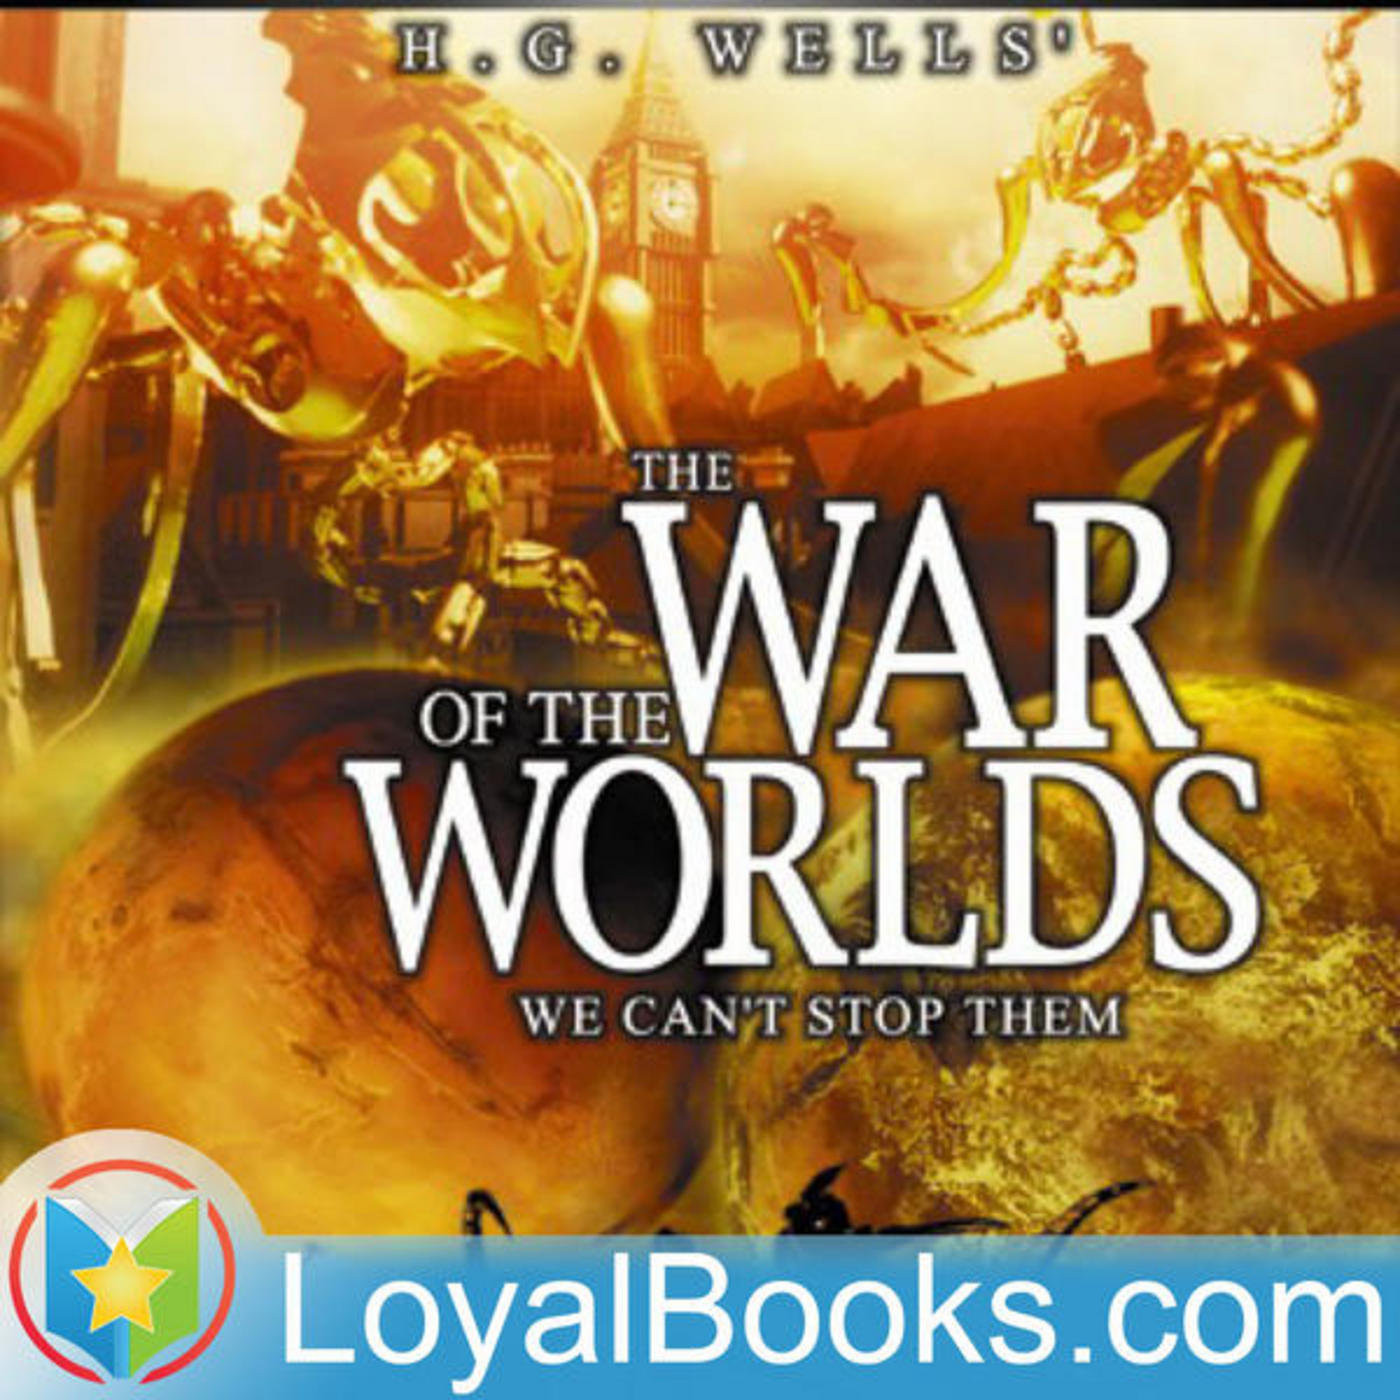 war of the worlds essays Free essay: to most individuals living in the united states on october 30, 1938, this sunday evening seemed like any other sunday evening around 7:00 pm.